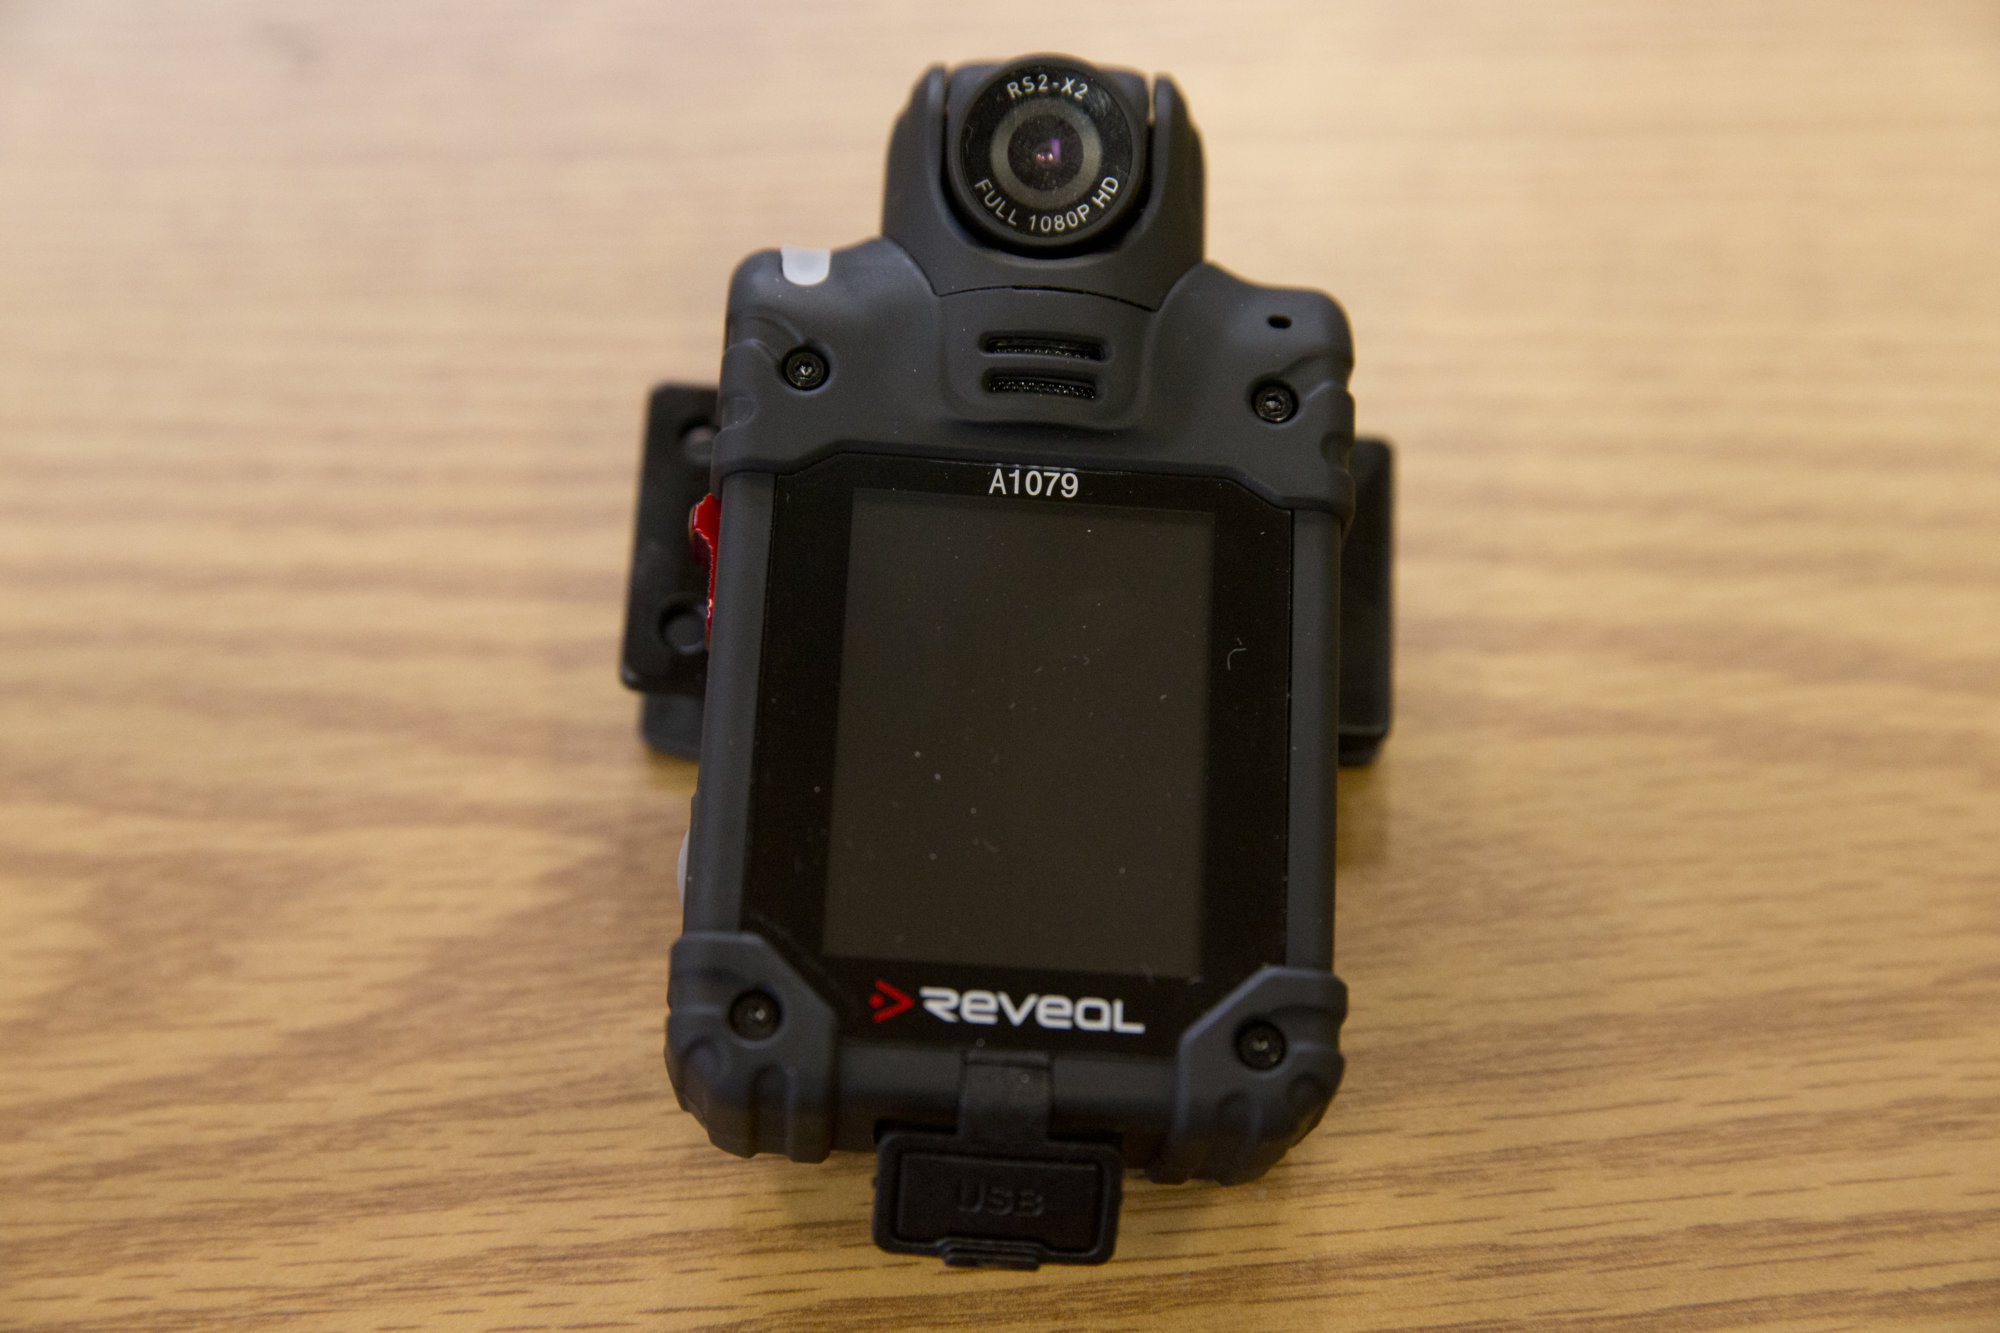 After policy set, Fairfax Co. police to test body-worn cameras